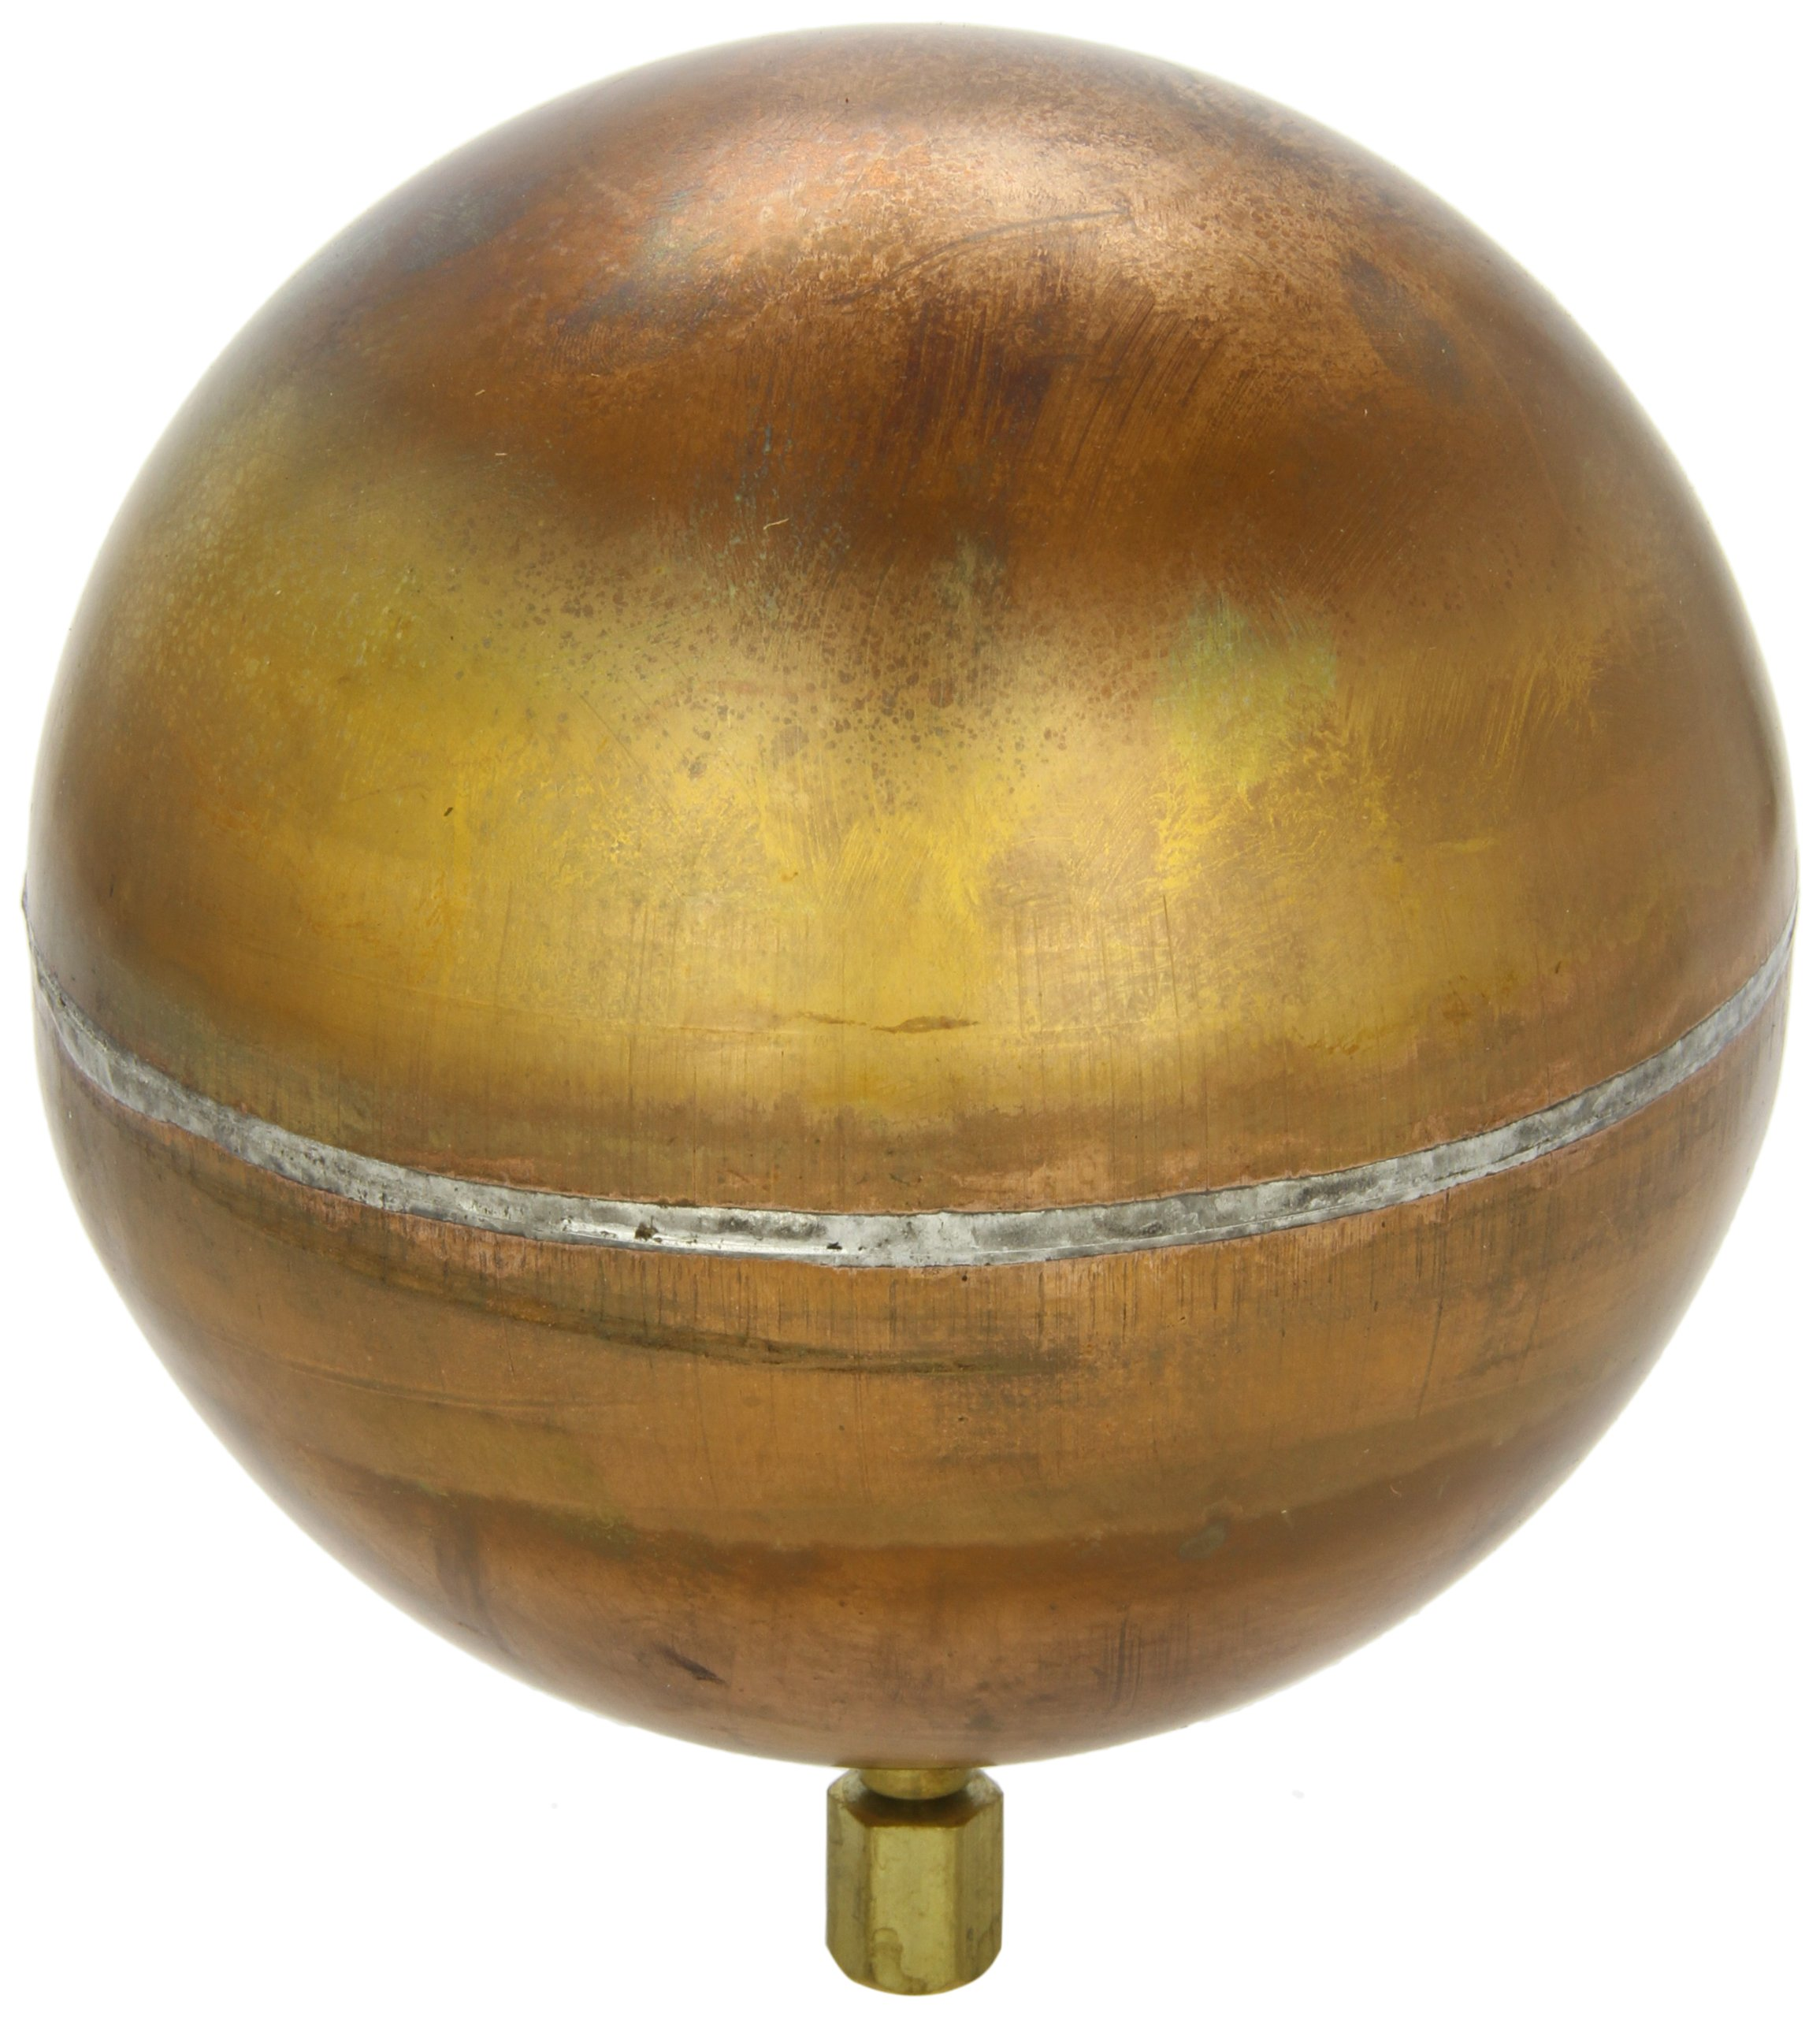 Robert Manufacturing R440 Series Bob Spherical Copper Float, 3/8''-16 SAE Female Spud, 6'' Diameter, 3.26 lbs Buoyancy